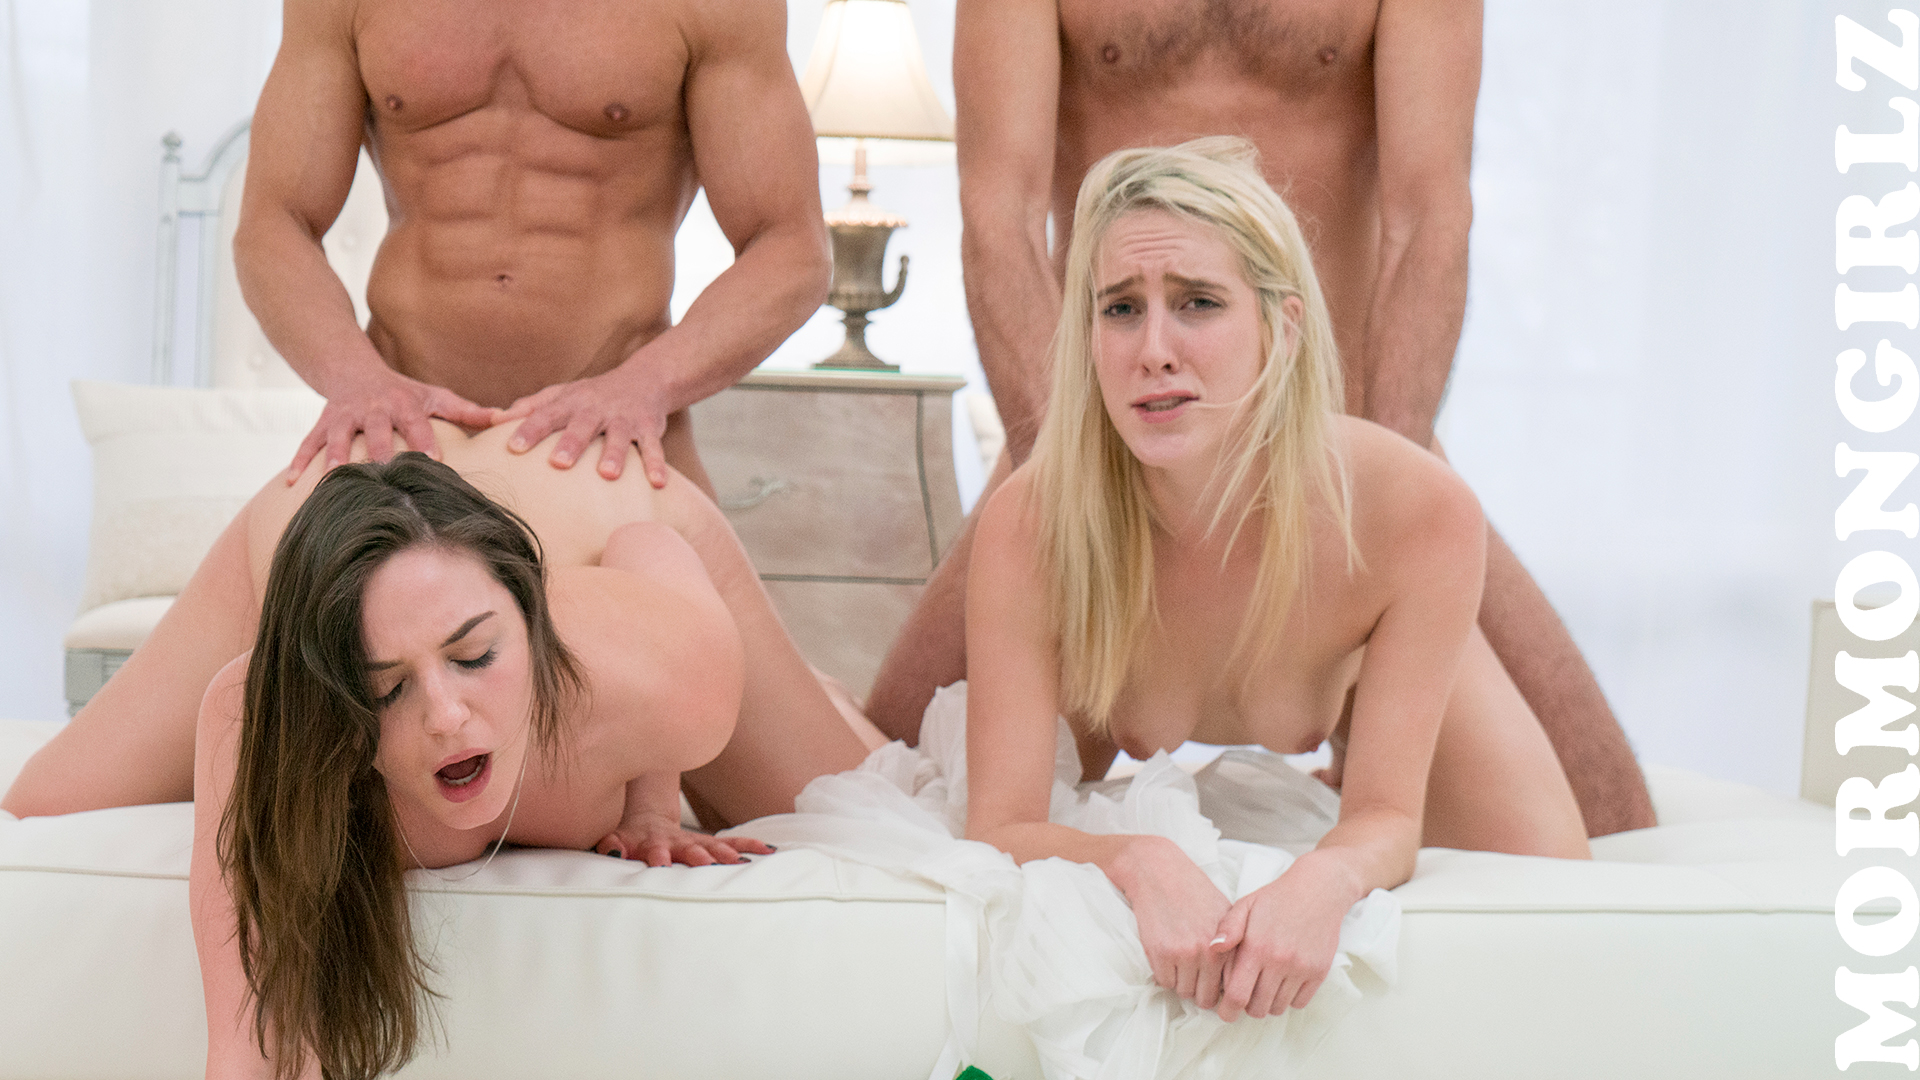 sweet mormon sister pressing her tongue inside her sisters vagina #5